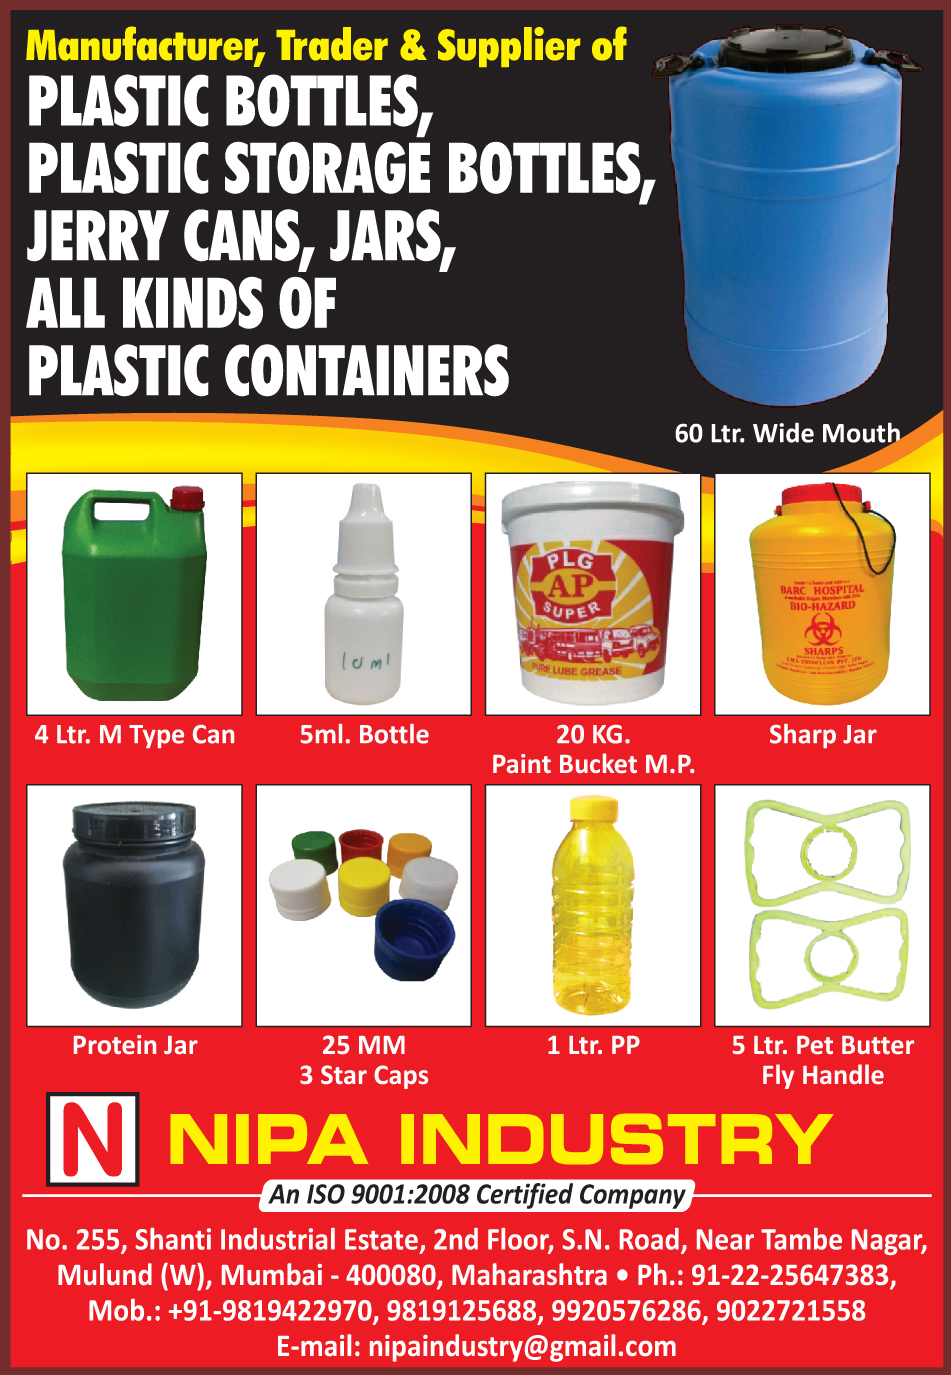 Plastic Bottles, Plastic Storage Bottles, Jerry Cans, Plastic Jars, Plastic Containers, M Type Cans, Bottles, Paint Bucket MP, Sharp Jars, Protein Jars, 3 Star Caps, PP Bottles, Pet Butter Fly Handles